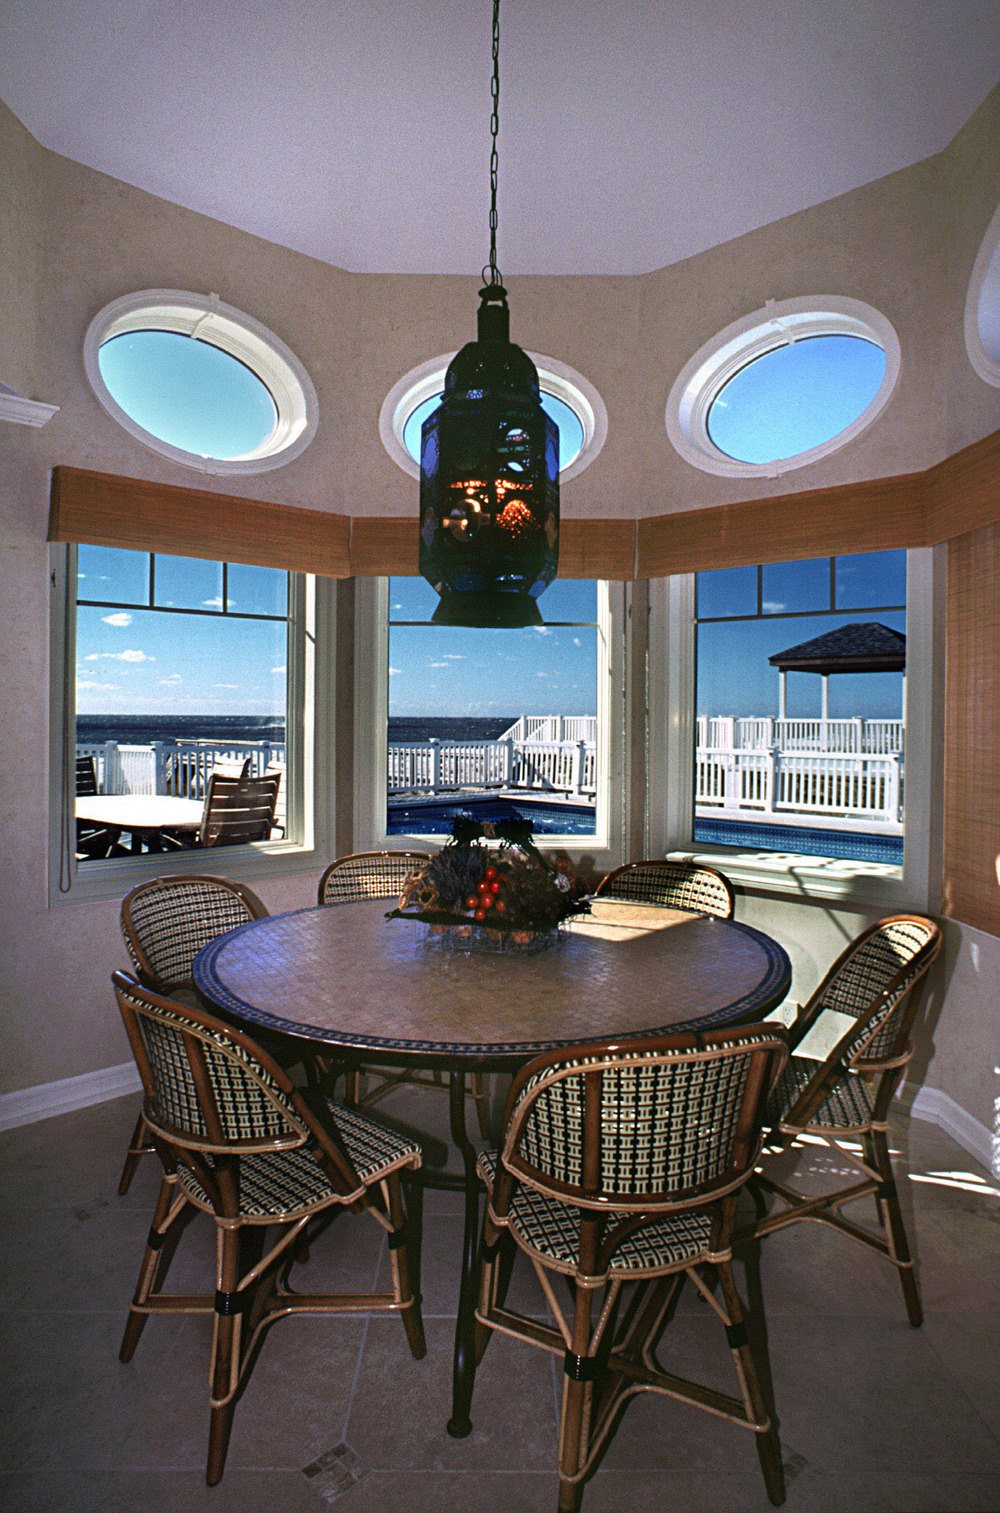 Beach House. Tobin Parnes Design. Residential. Dining Area.